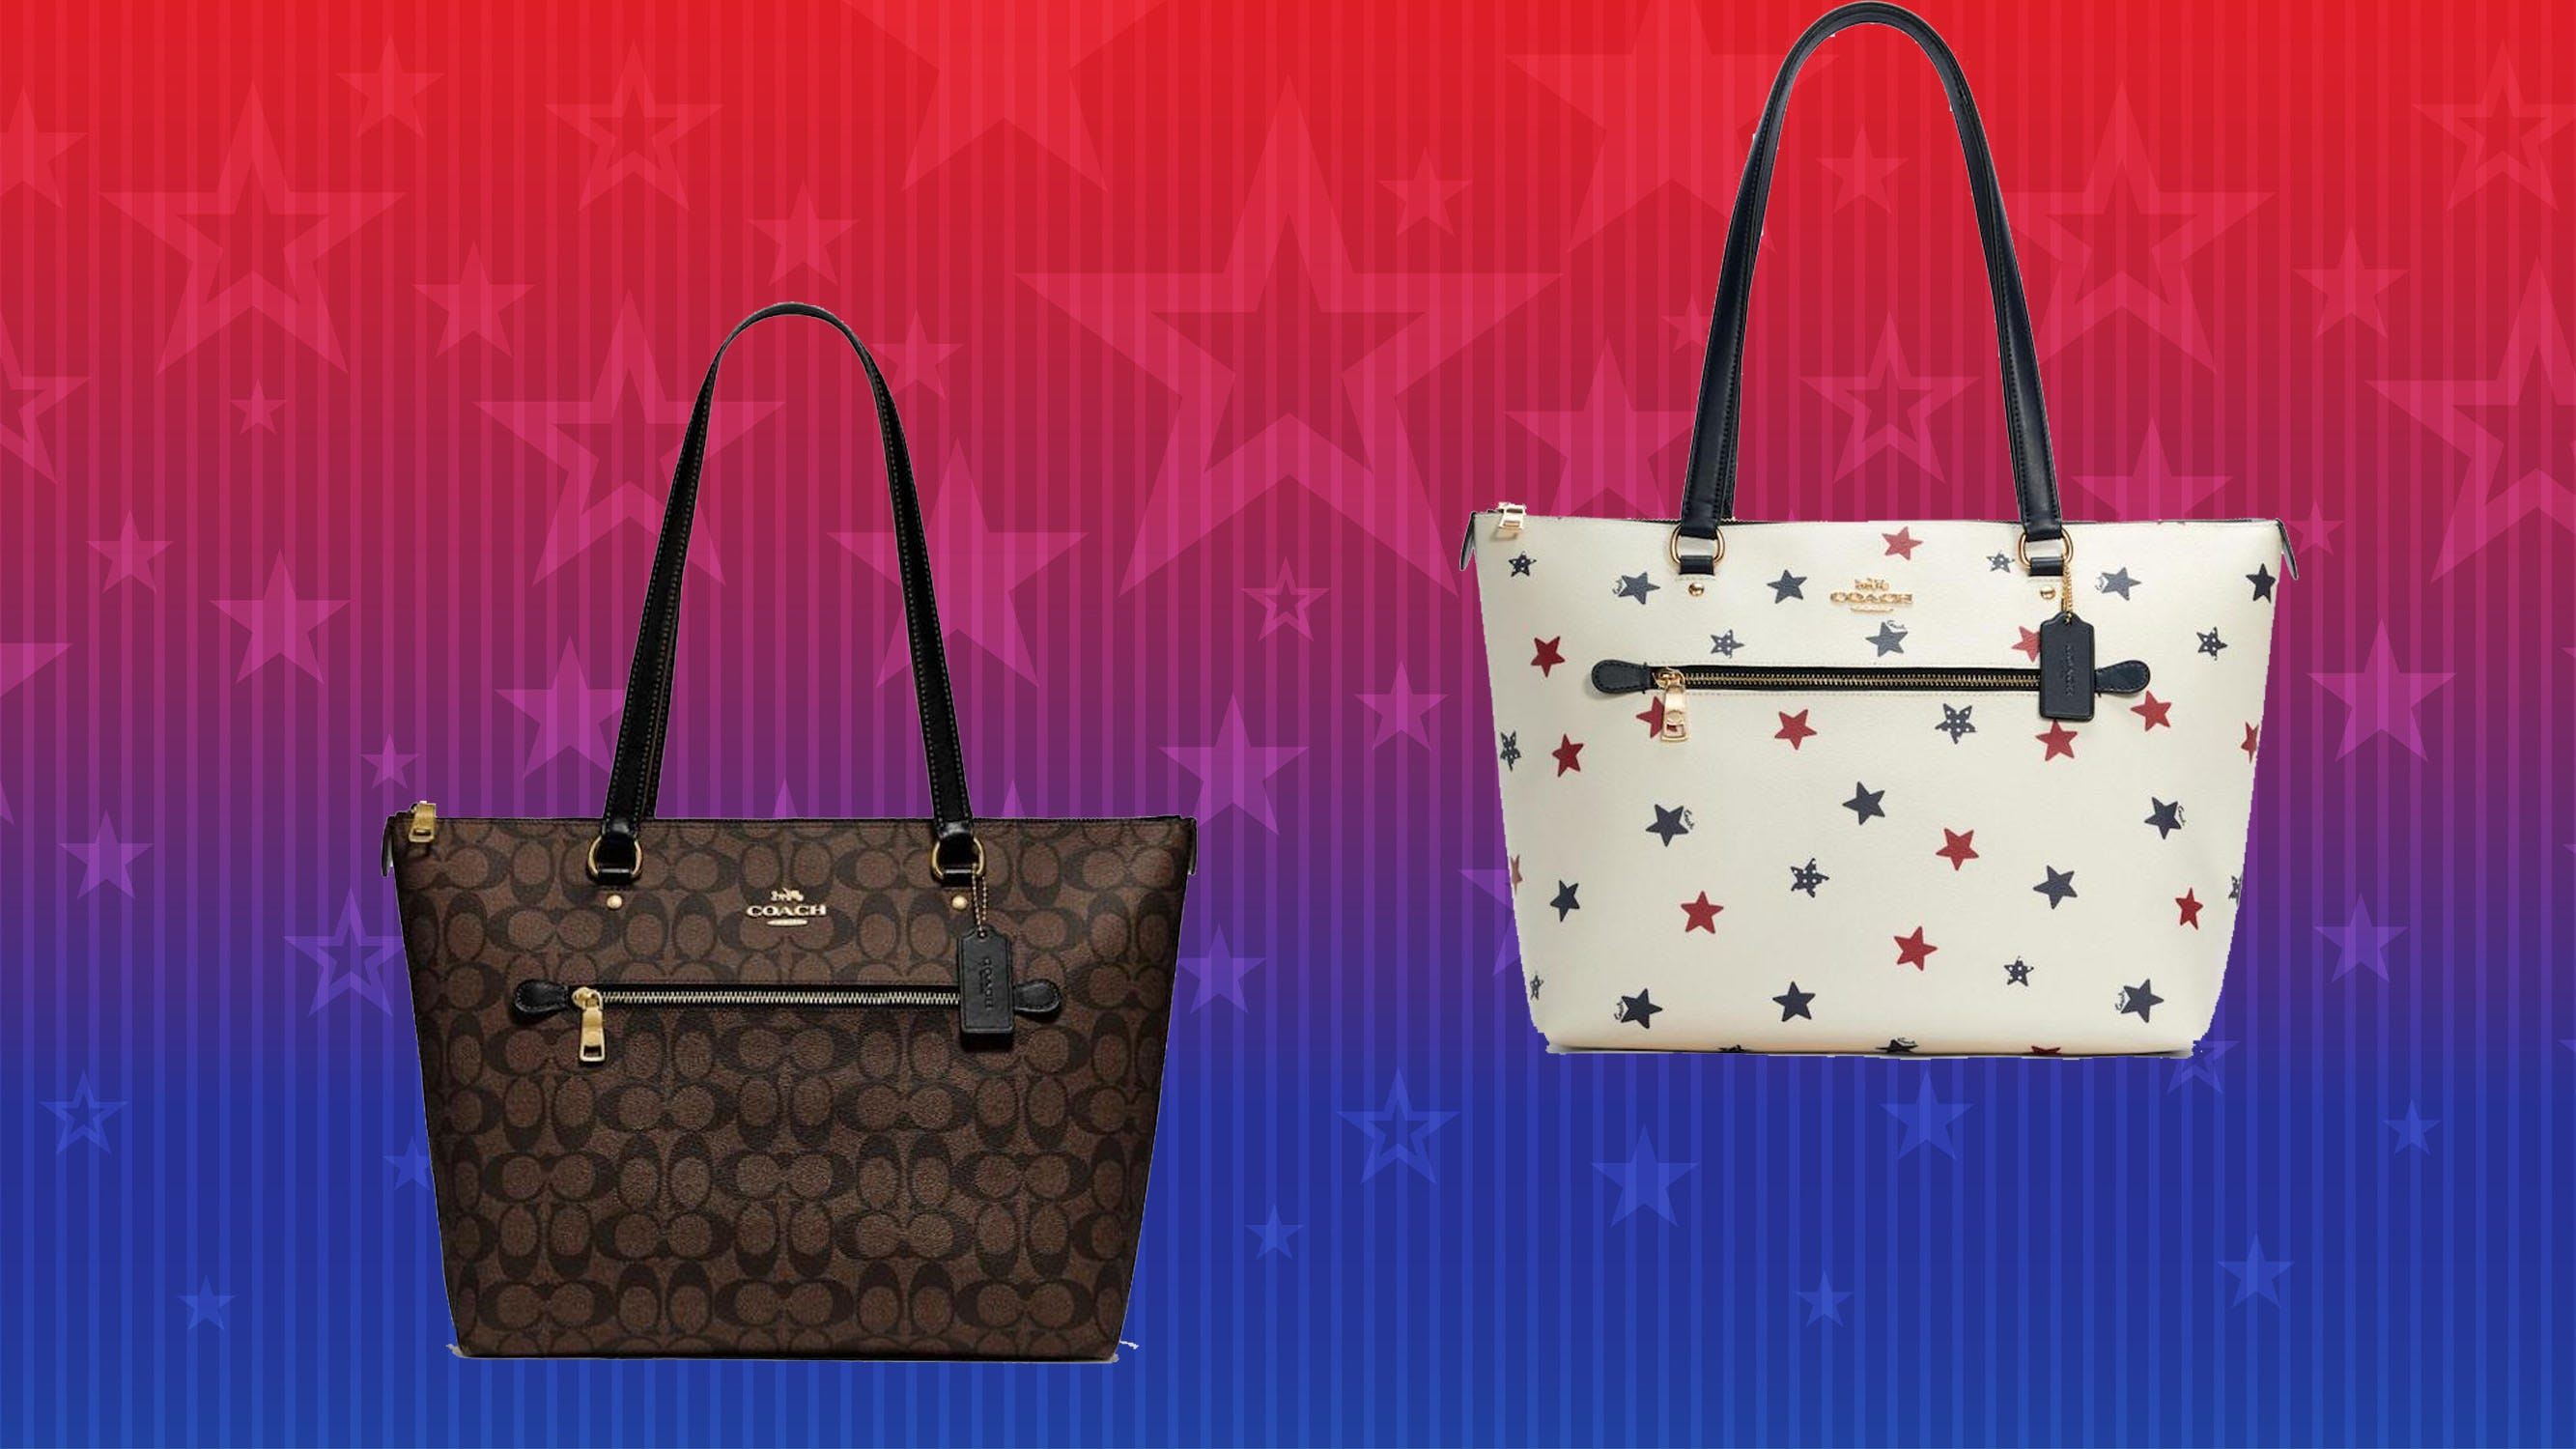 Coach Outlet purses are on mega-clearance right now for this 4th of July sale